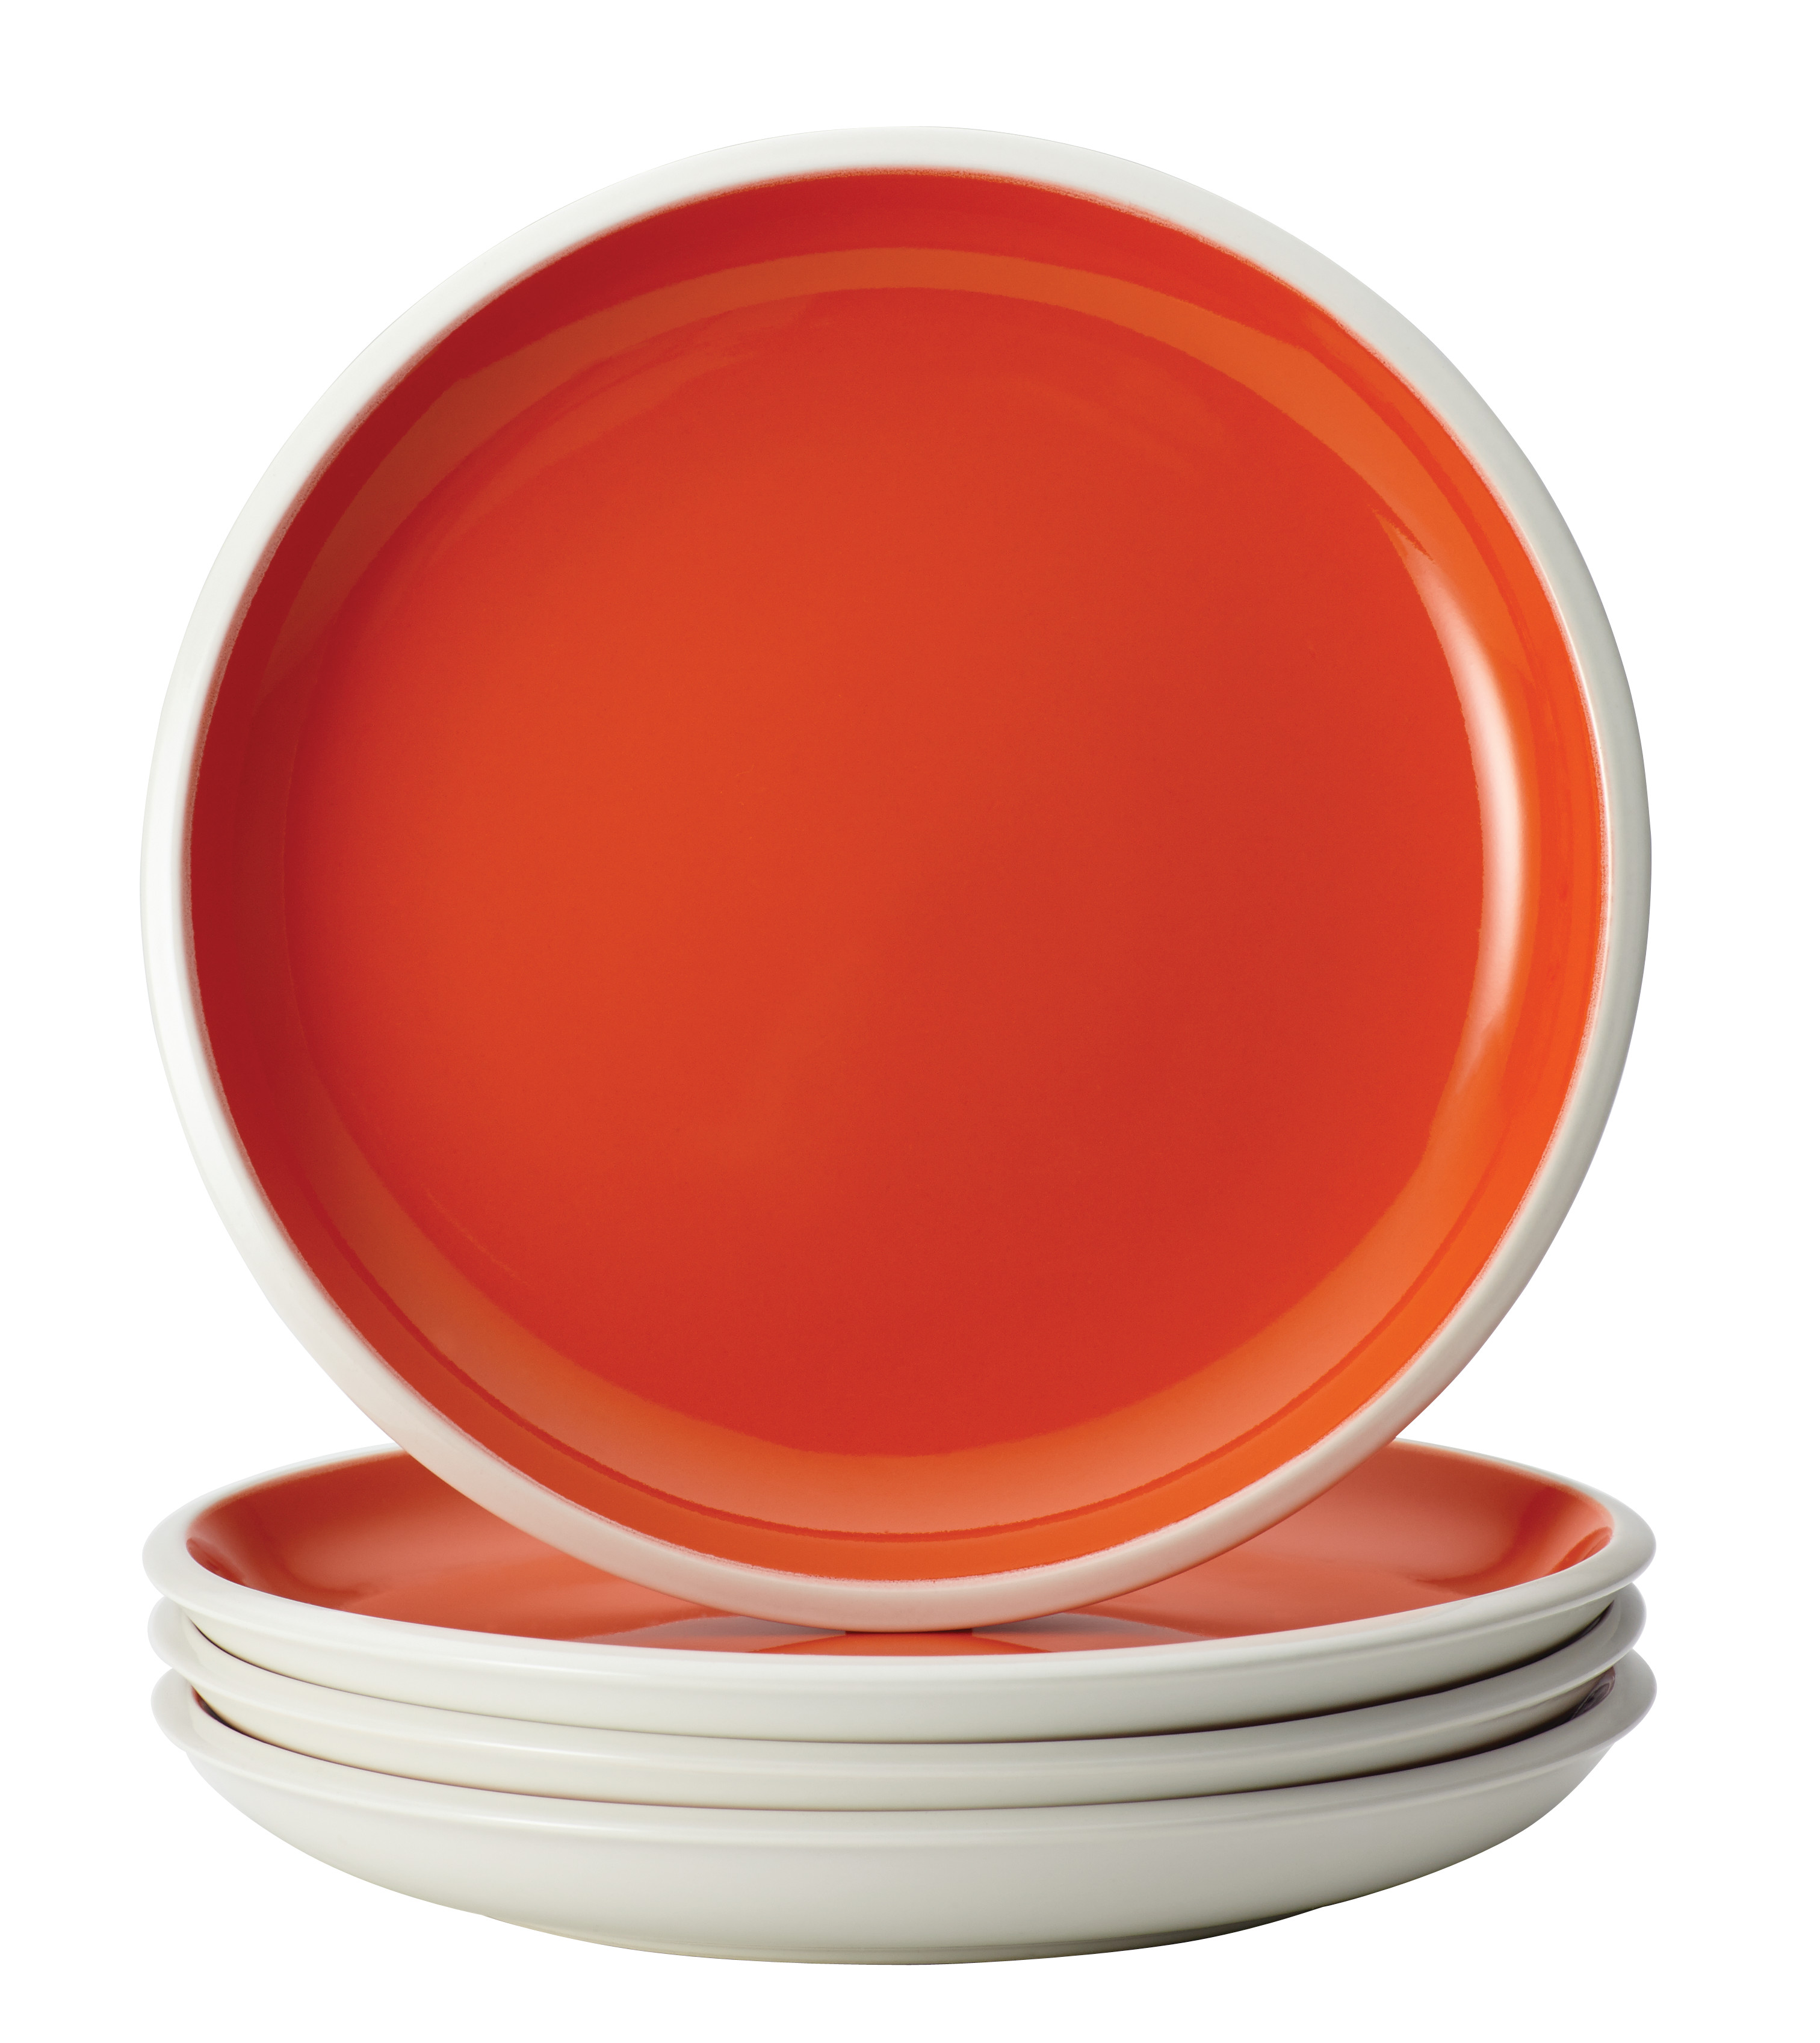 Rachael Ray Dinnerware Rise 4-Piece Stoneware Salad Plate Set, Orange